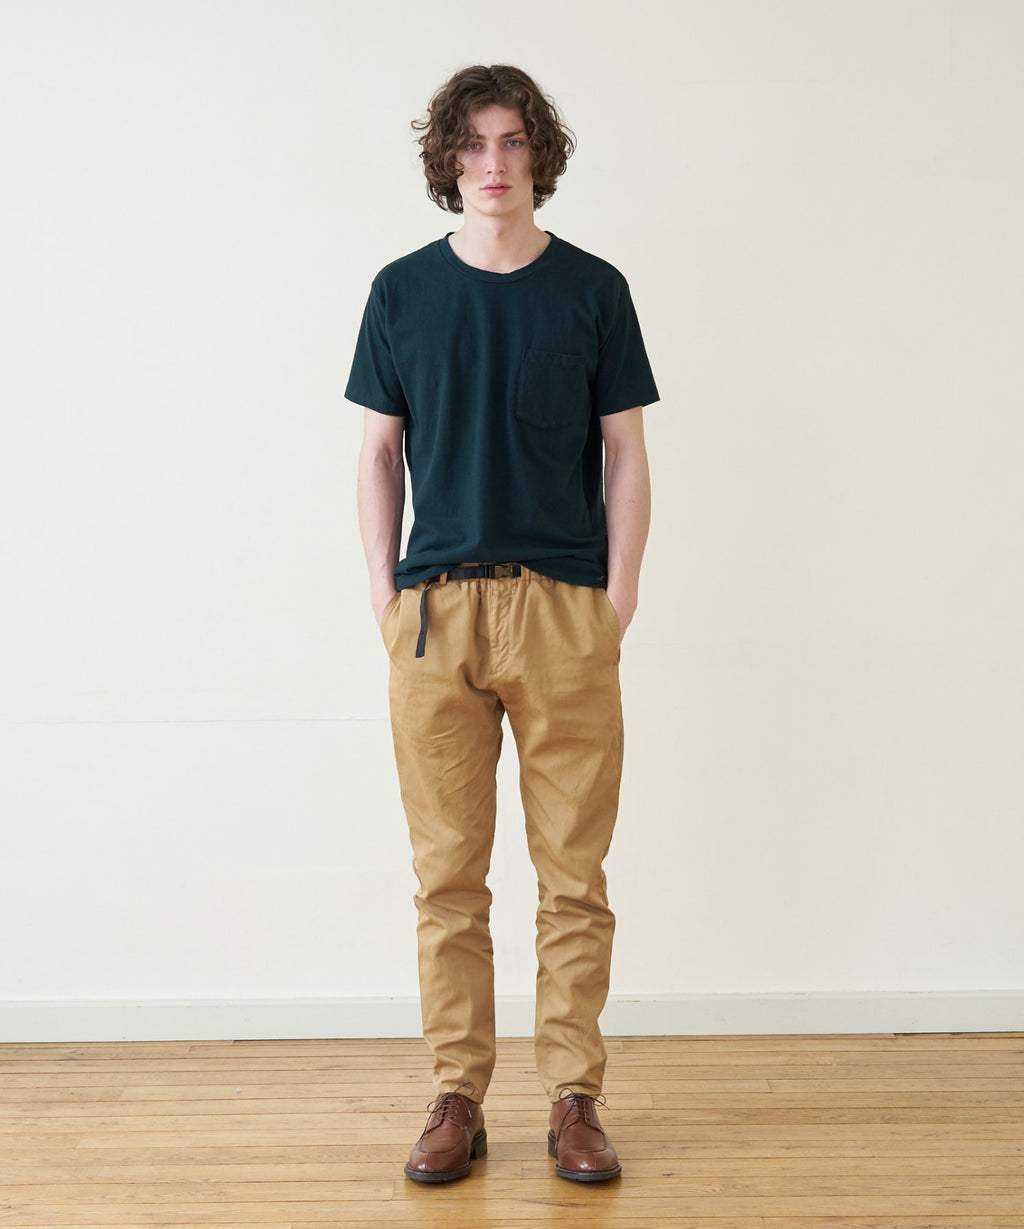 A.TAKA / EASY PANTS / BEIGE